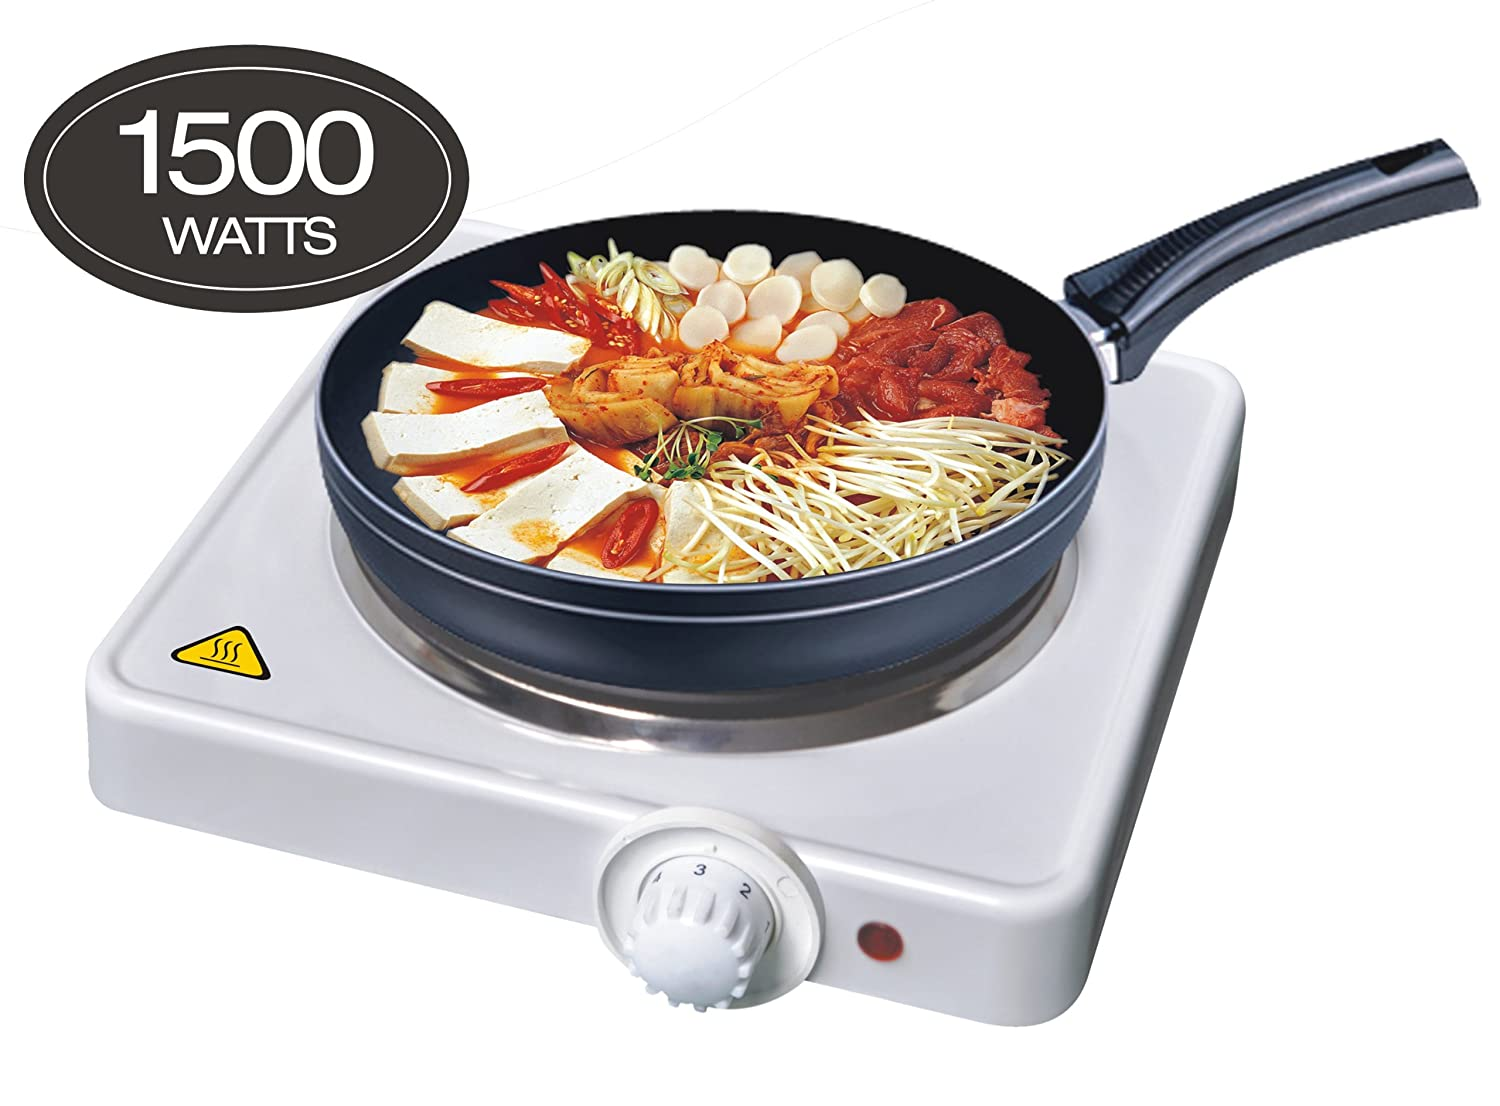 1500W Single Hob Table Top Hotplate Hot Plate (White)